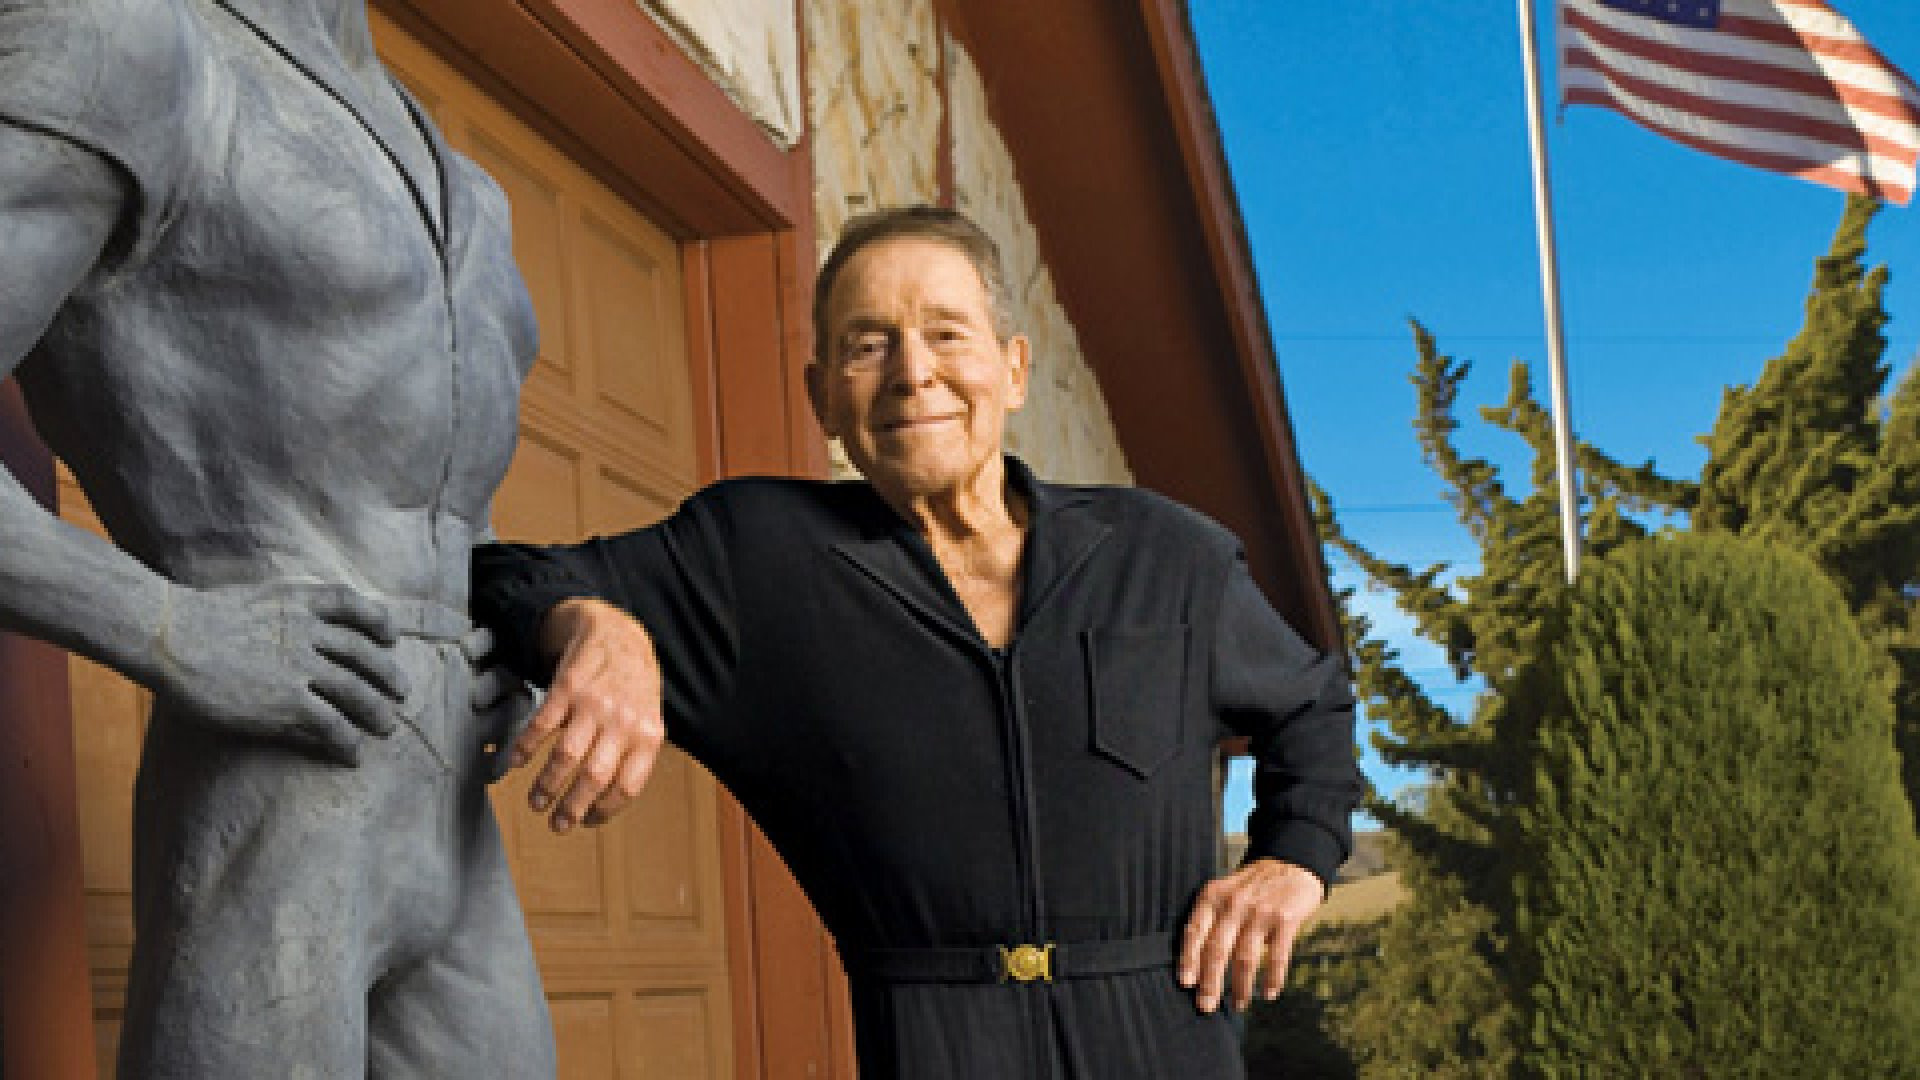 Jack LaLanne on How to Build a Successful Business